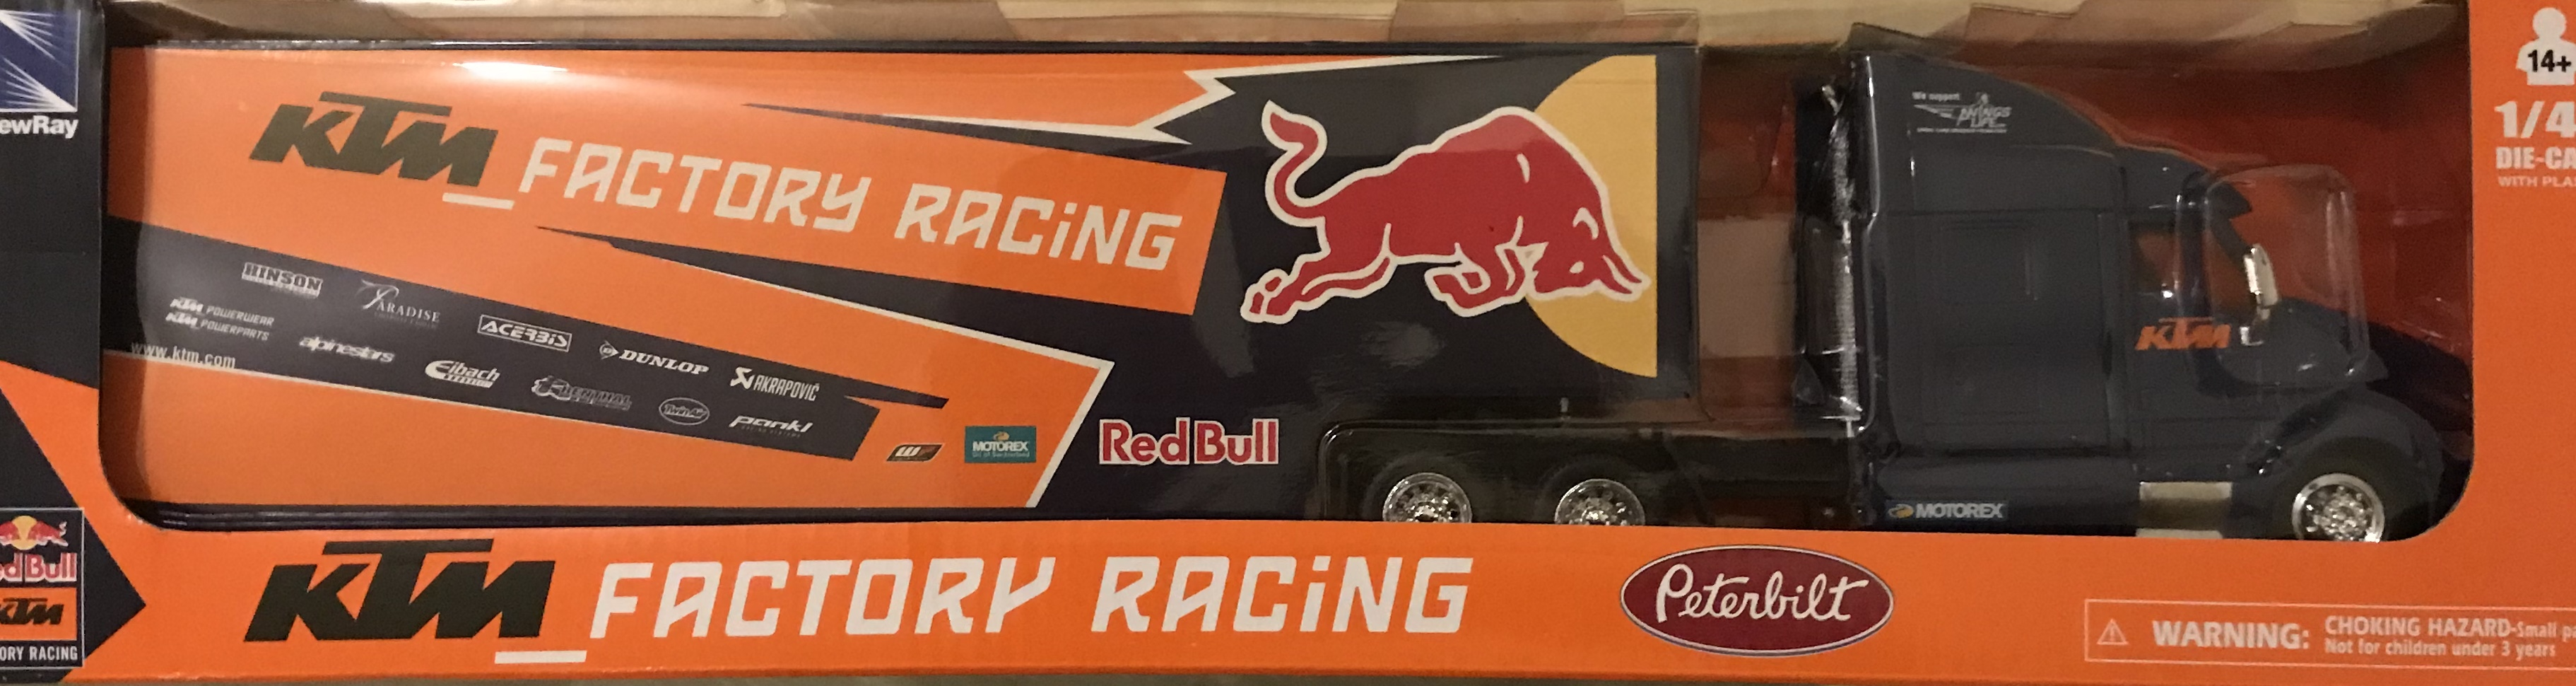 Model kamiónu týmu KTM Red Bull Factory Racing